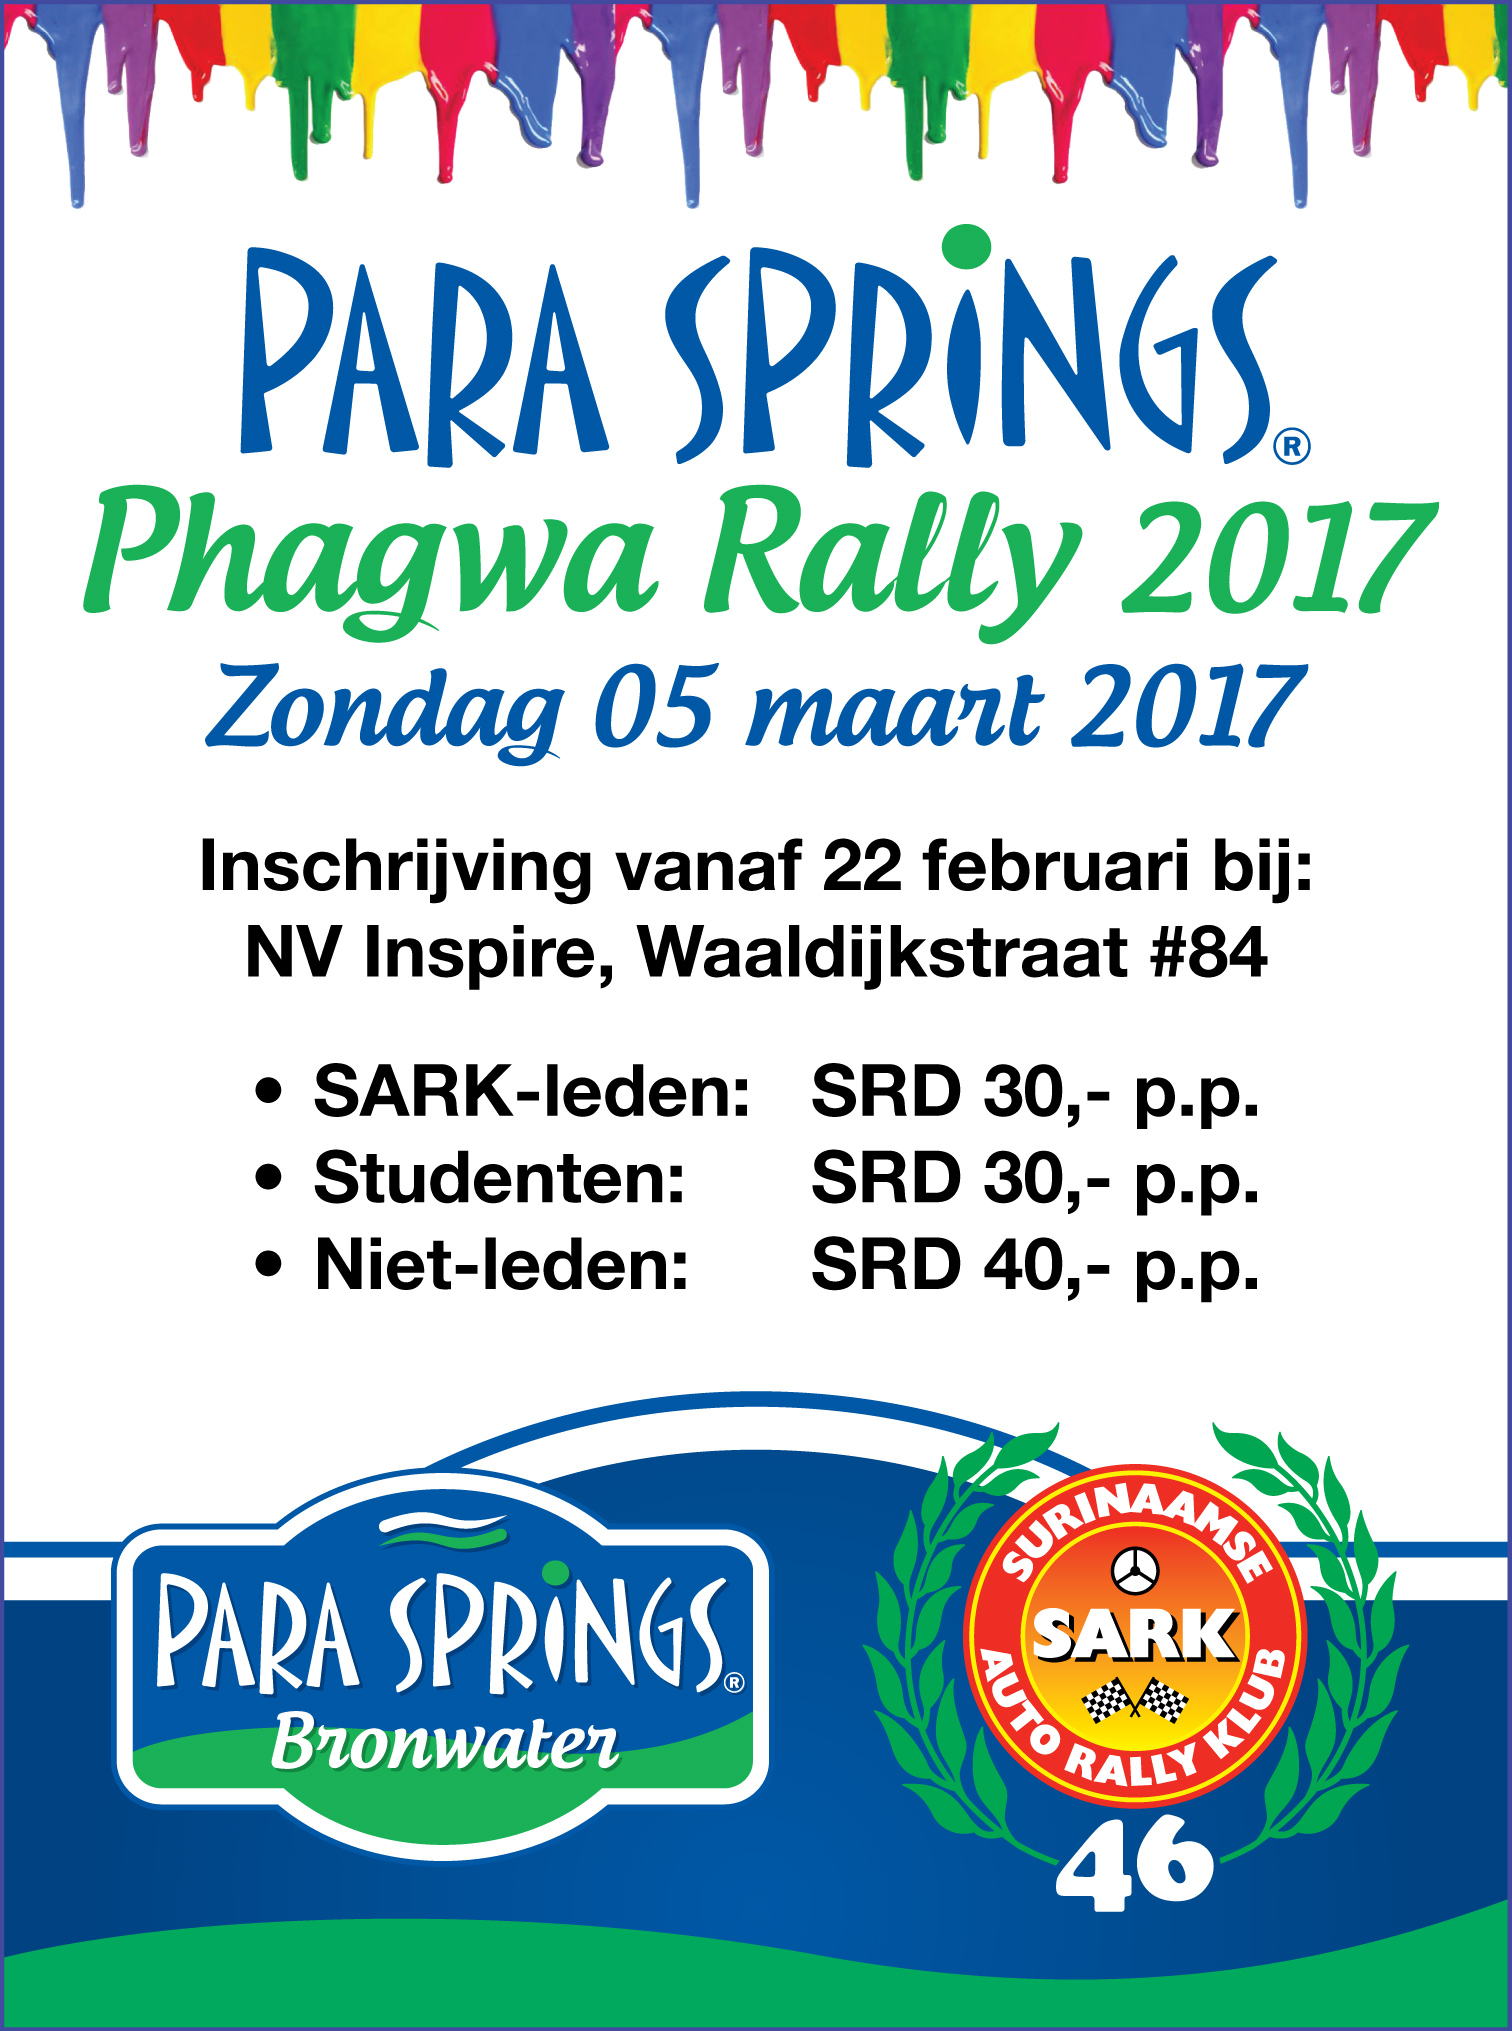 12vk phagwa rally 2017 color